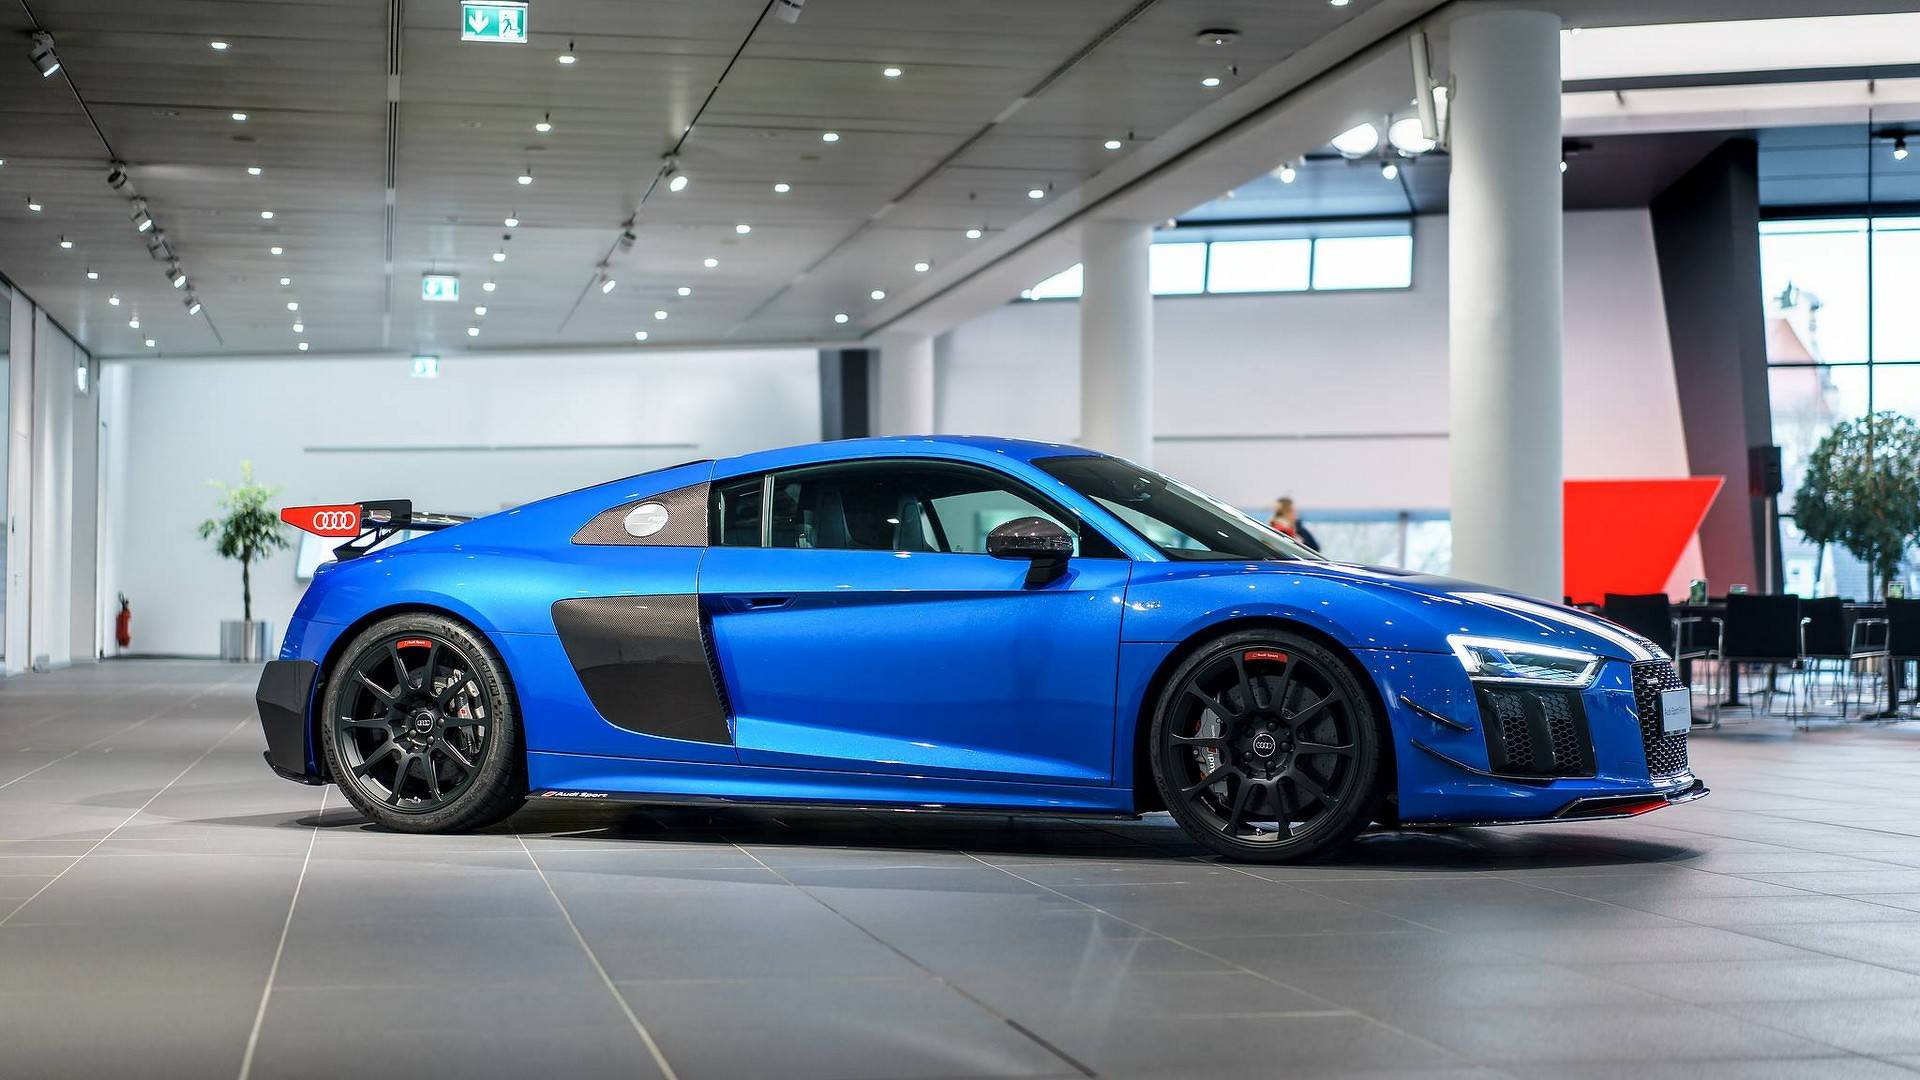 Audi R V Plus Has The Wow Factor With Optional Performance Parts - R8 audi